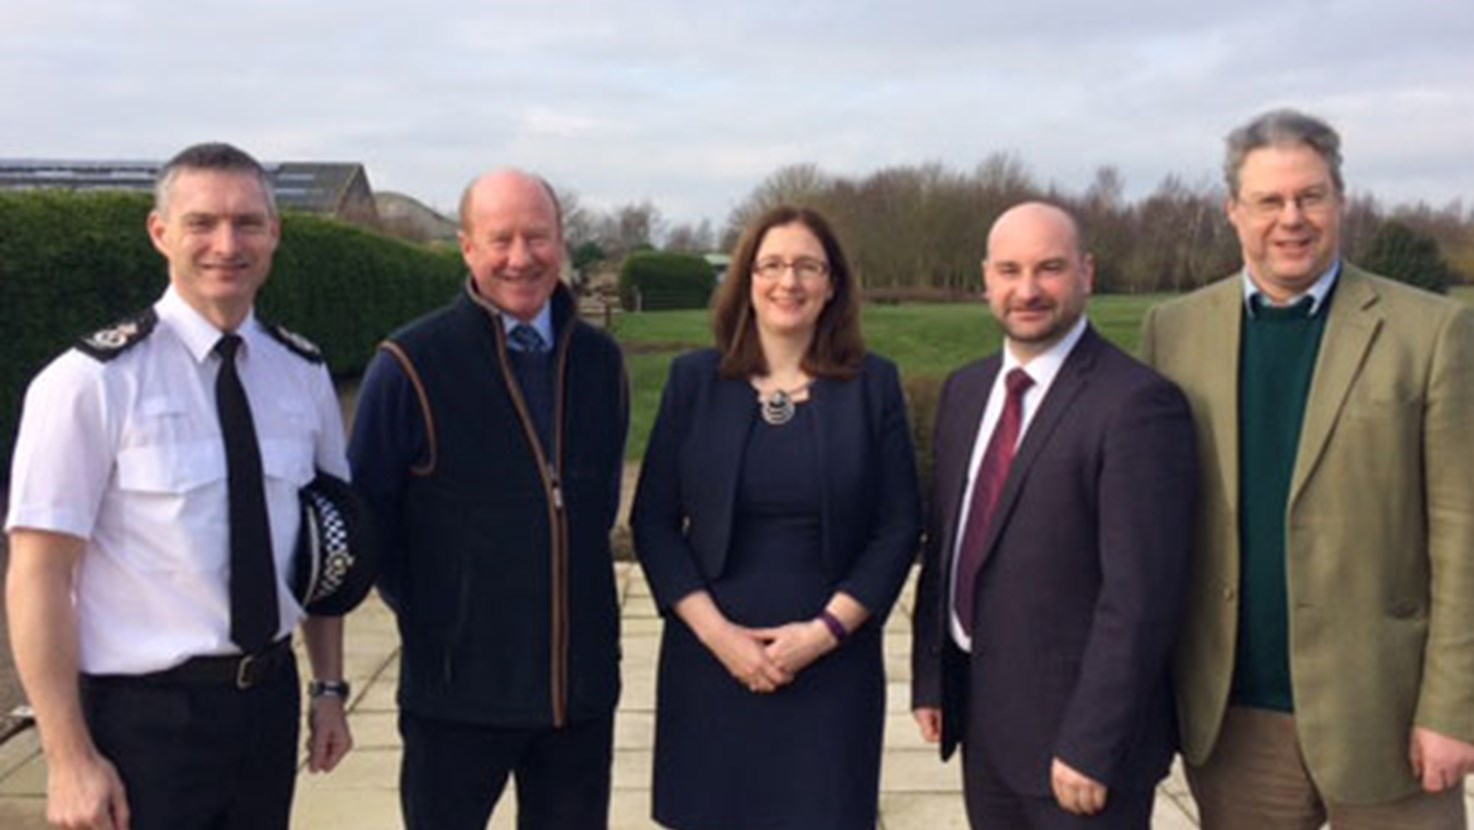 Chief Constable and PCC meet with NFU members